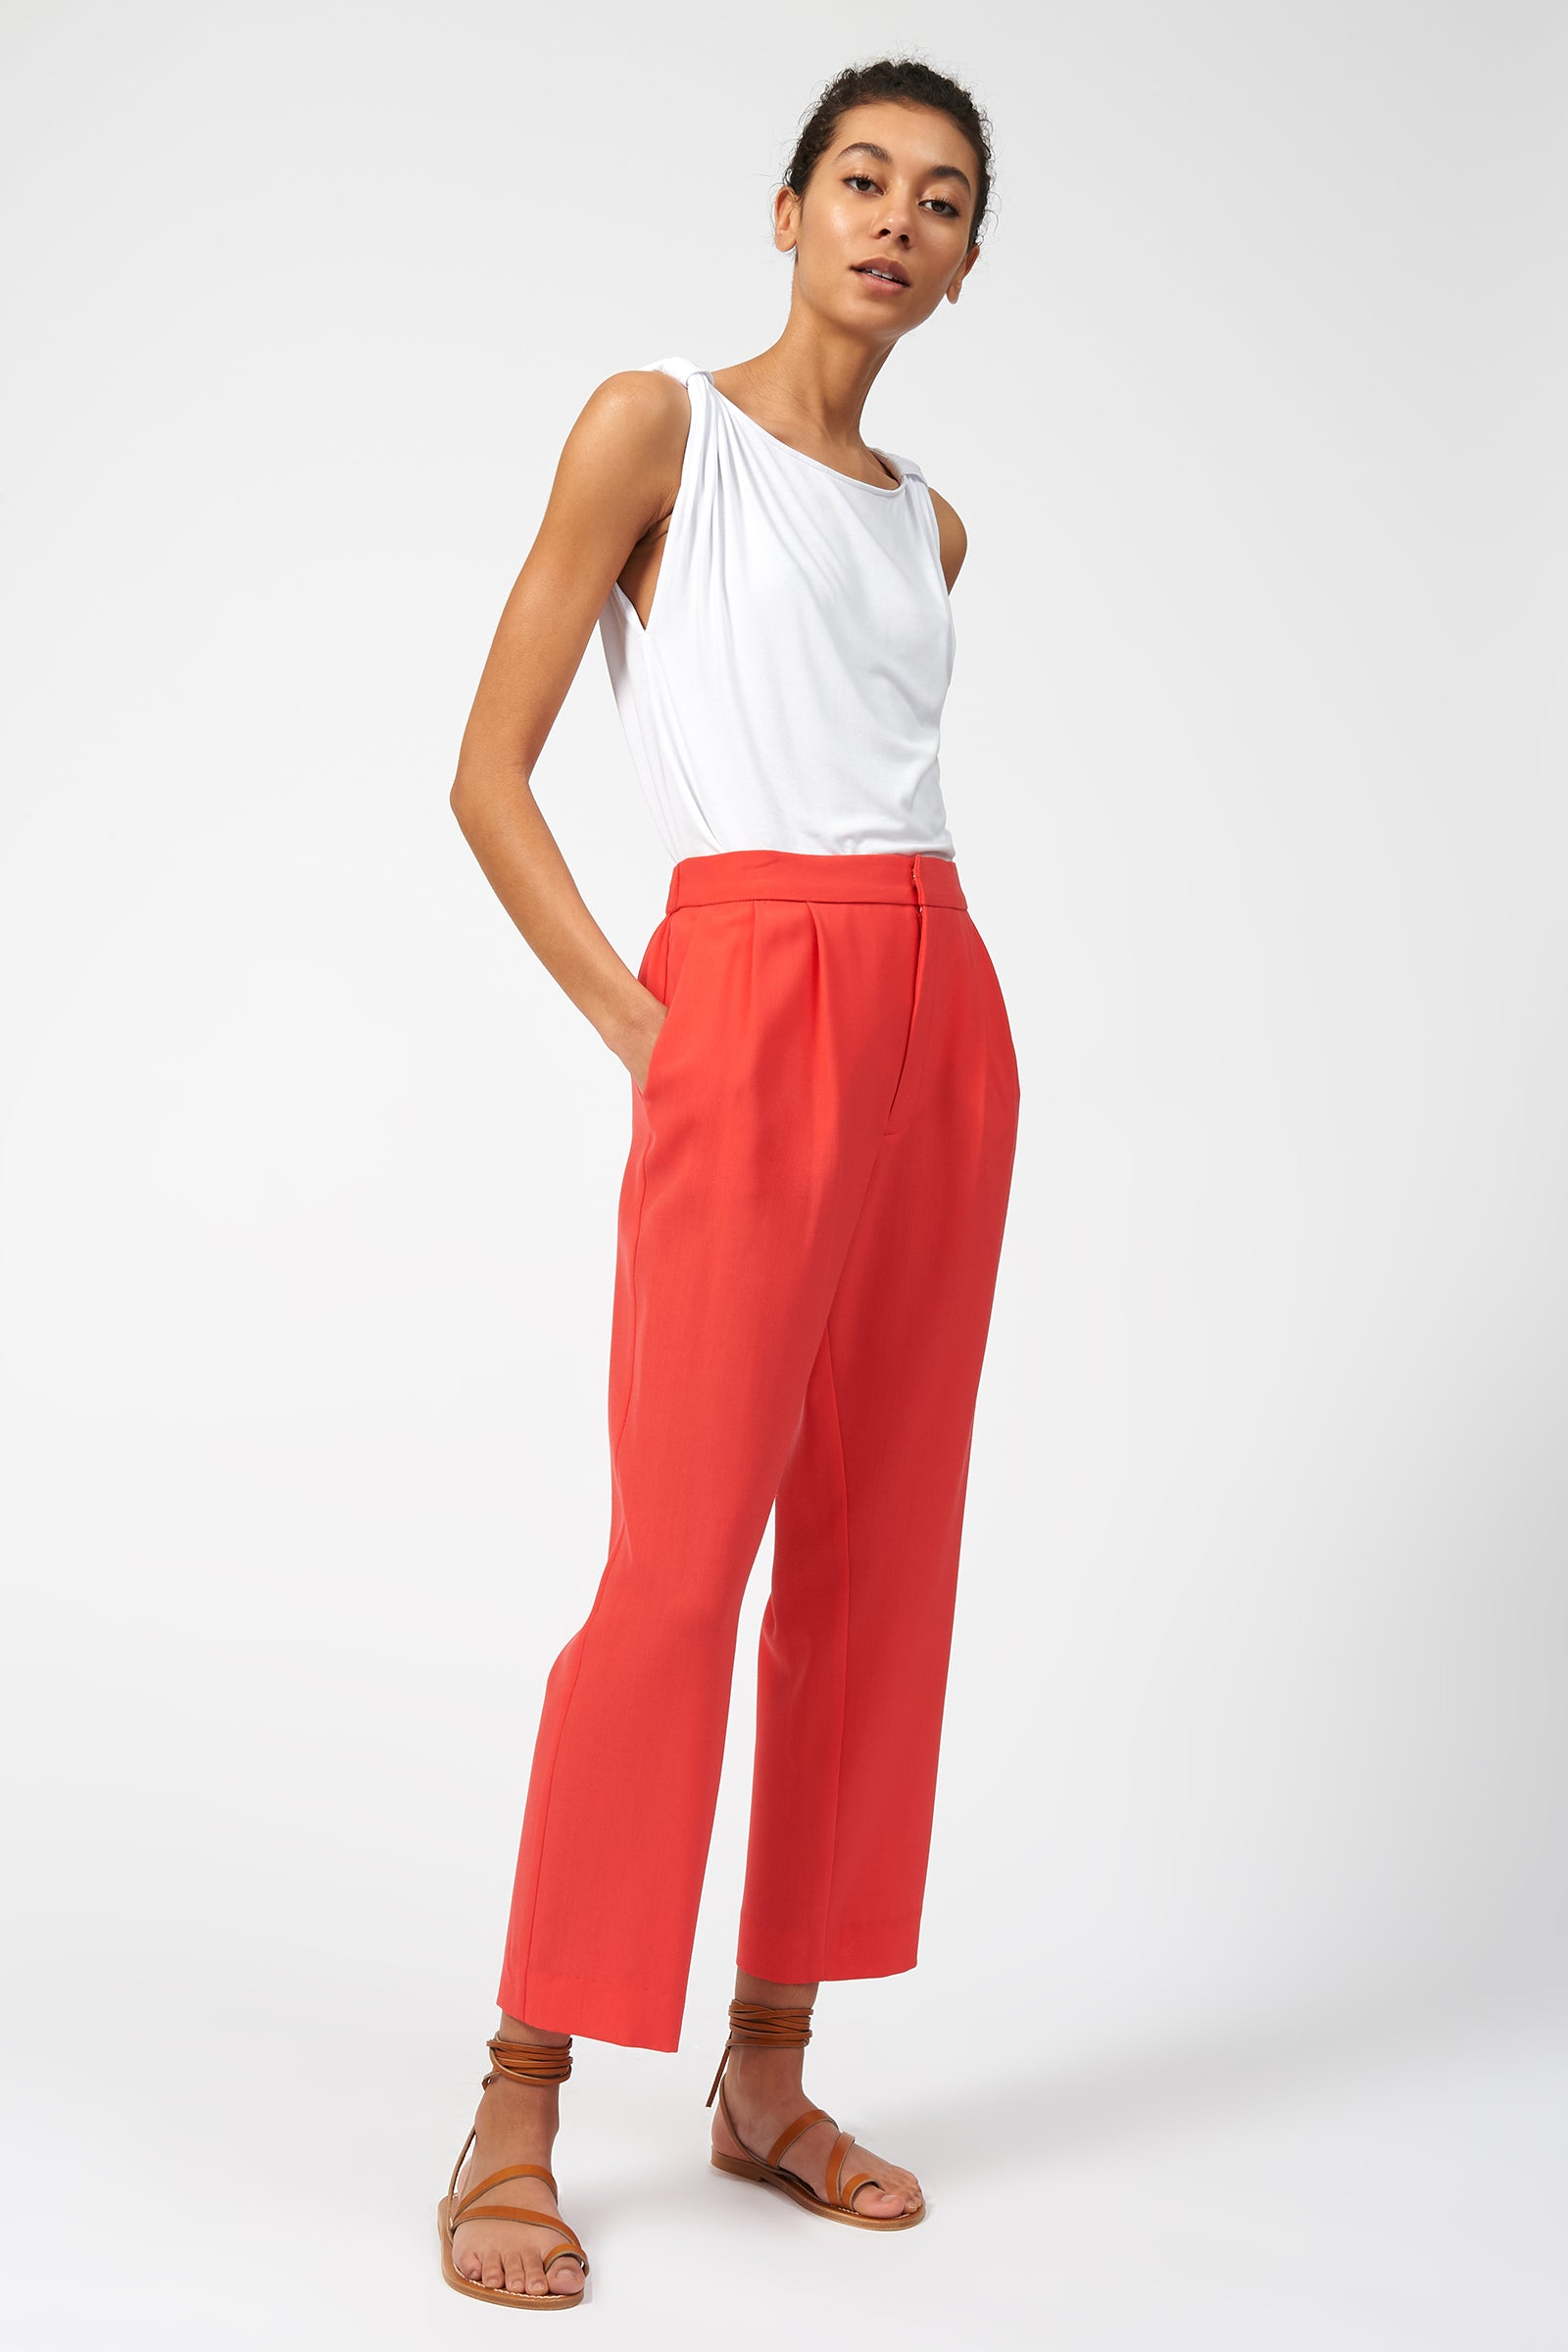 Kal Rieman Elastic Back Trouser in Coral Voyager on Model Full Front Side View